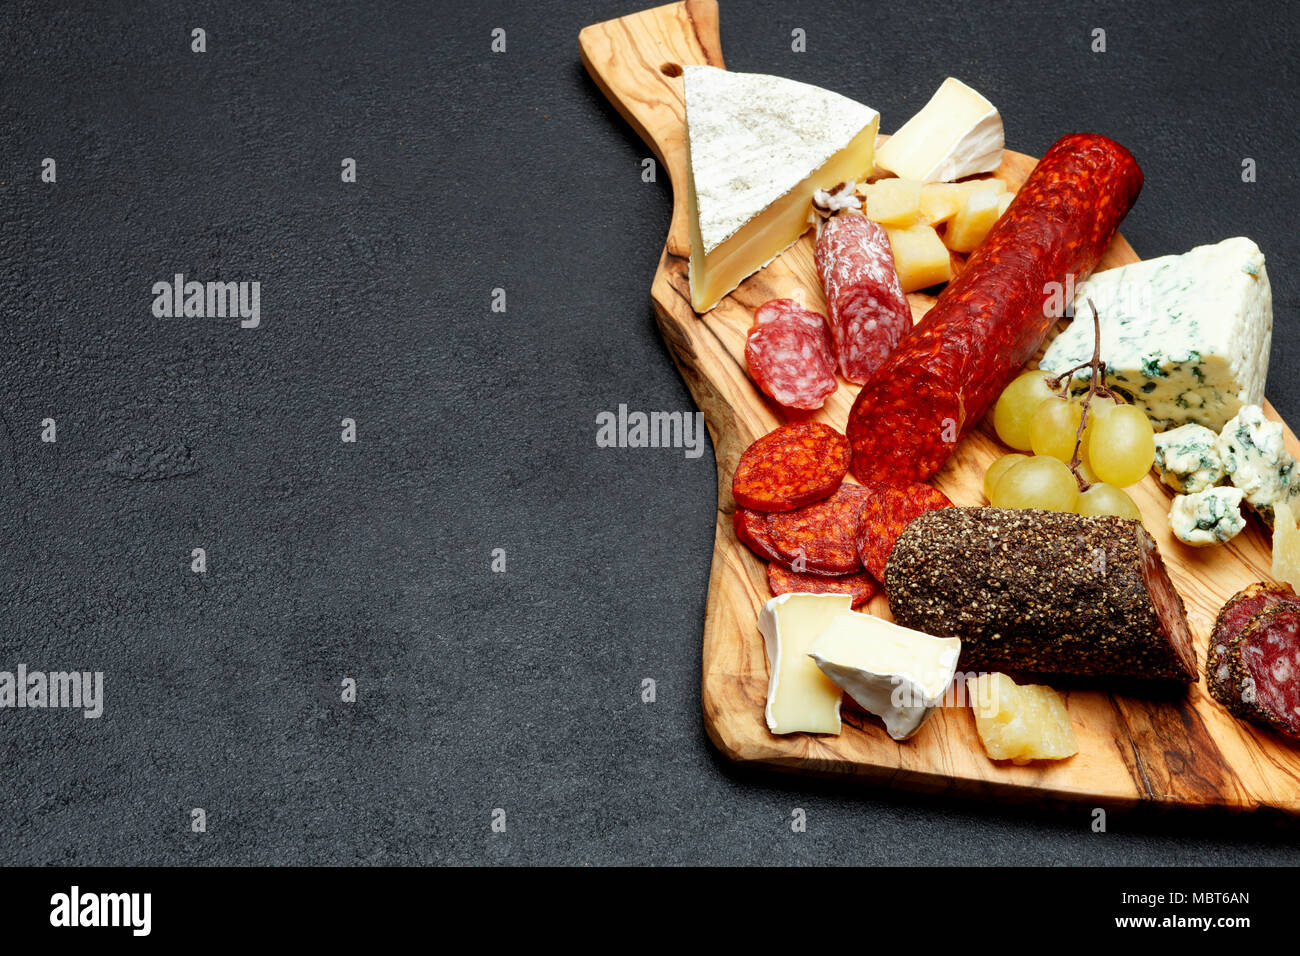 Cold meat cheese plate with salami sausage and cheese Stock Photo